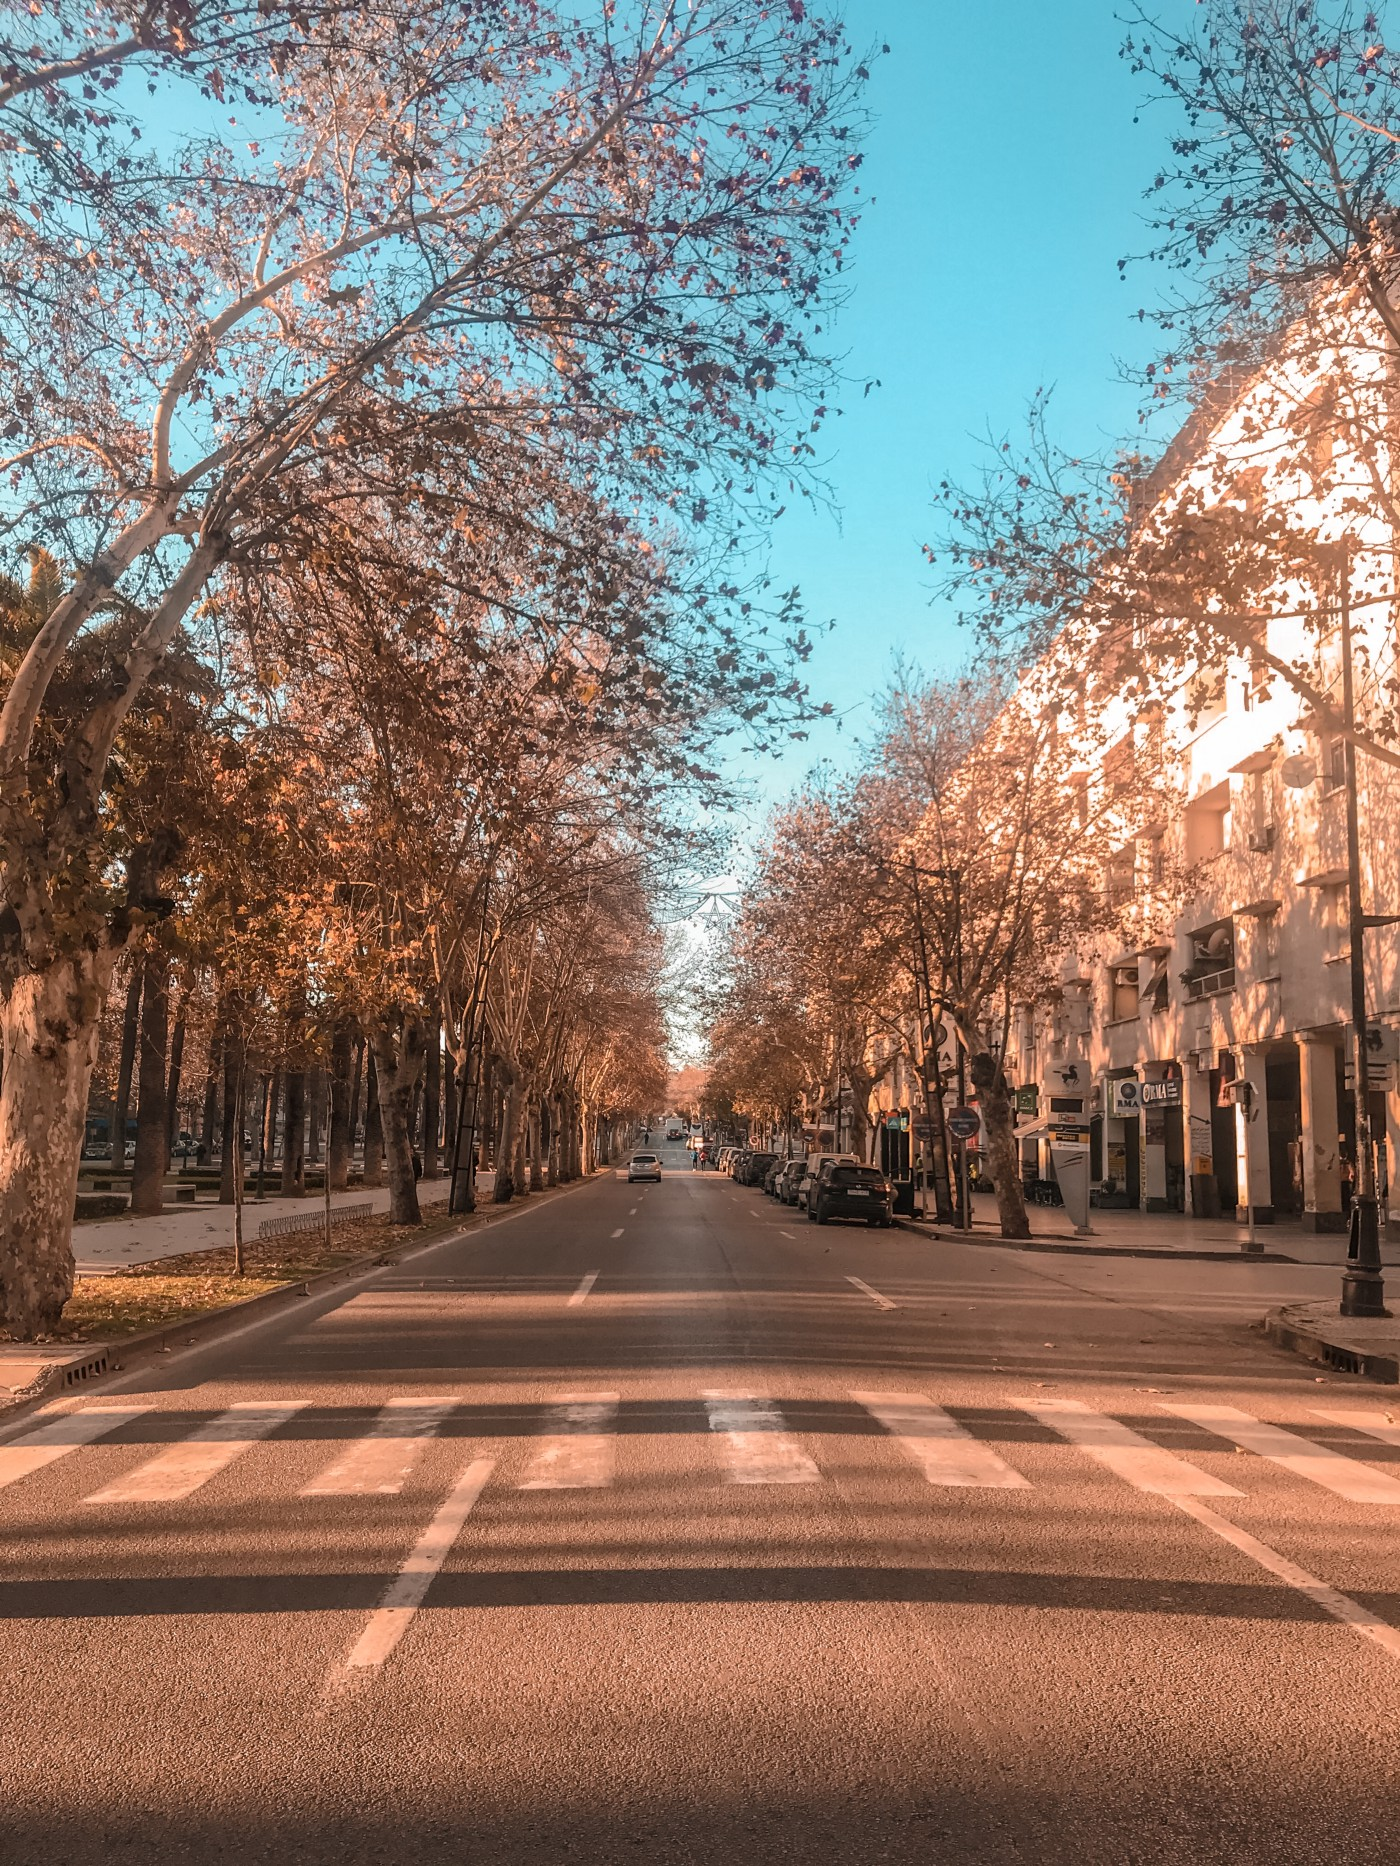 a sunny day, a street with color trees on both sides, there is a zebra crossing